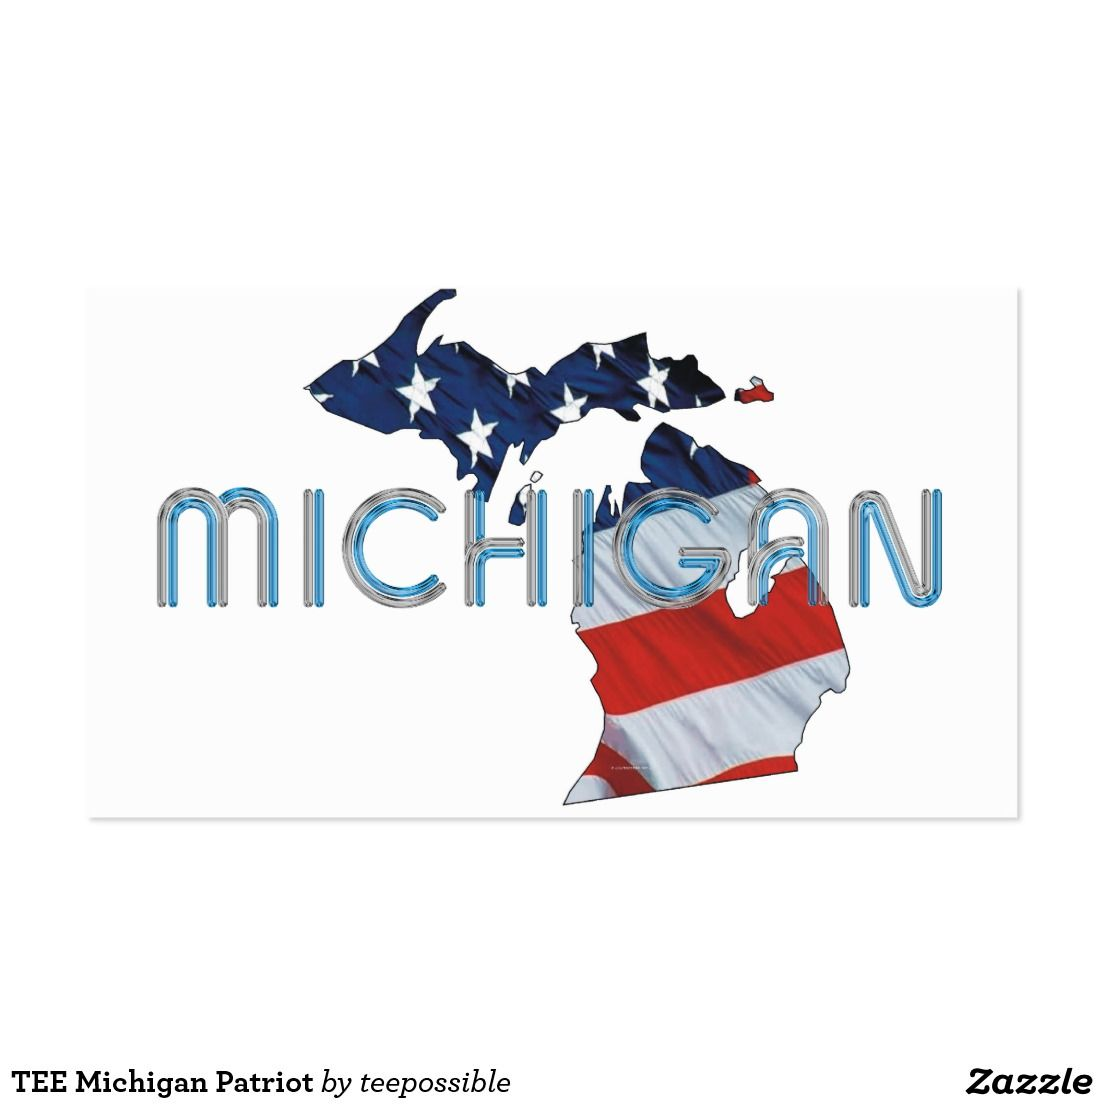 Tee michigan patriot large business card teepossible pinterest tee michigan patriot large business card colourmoves